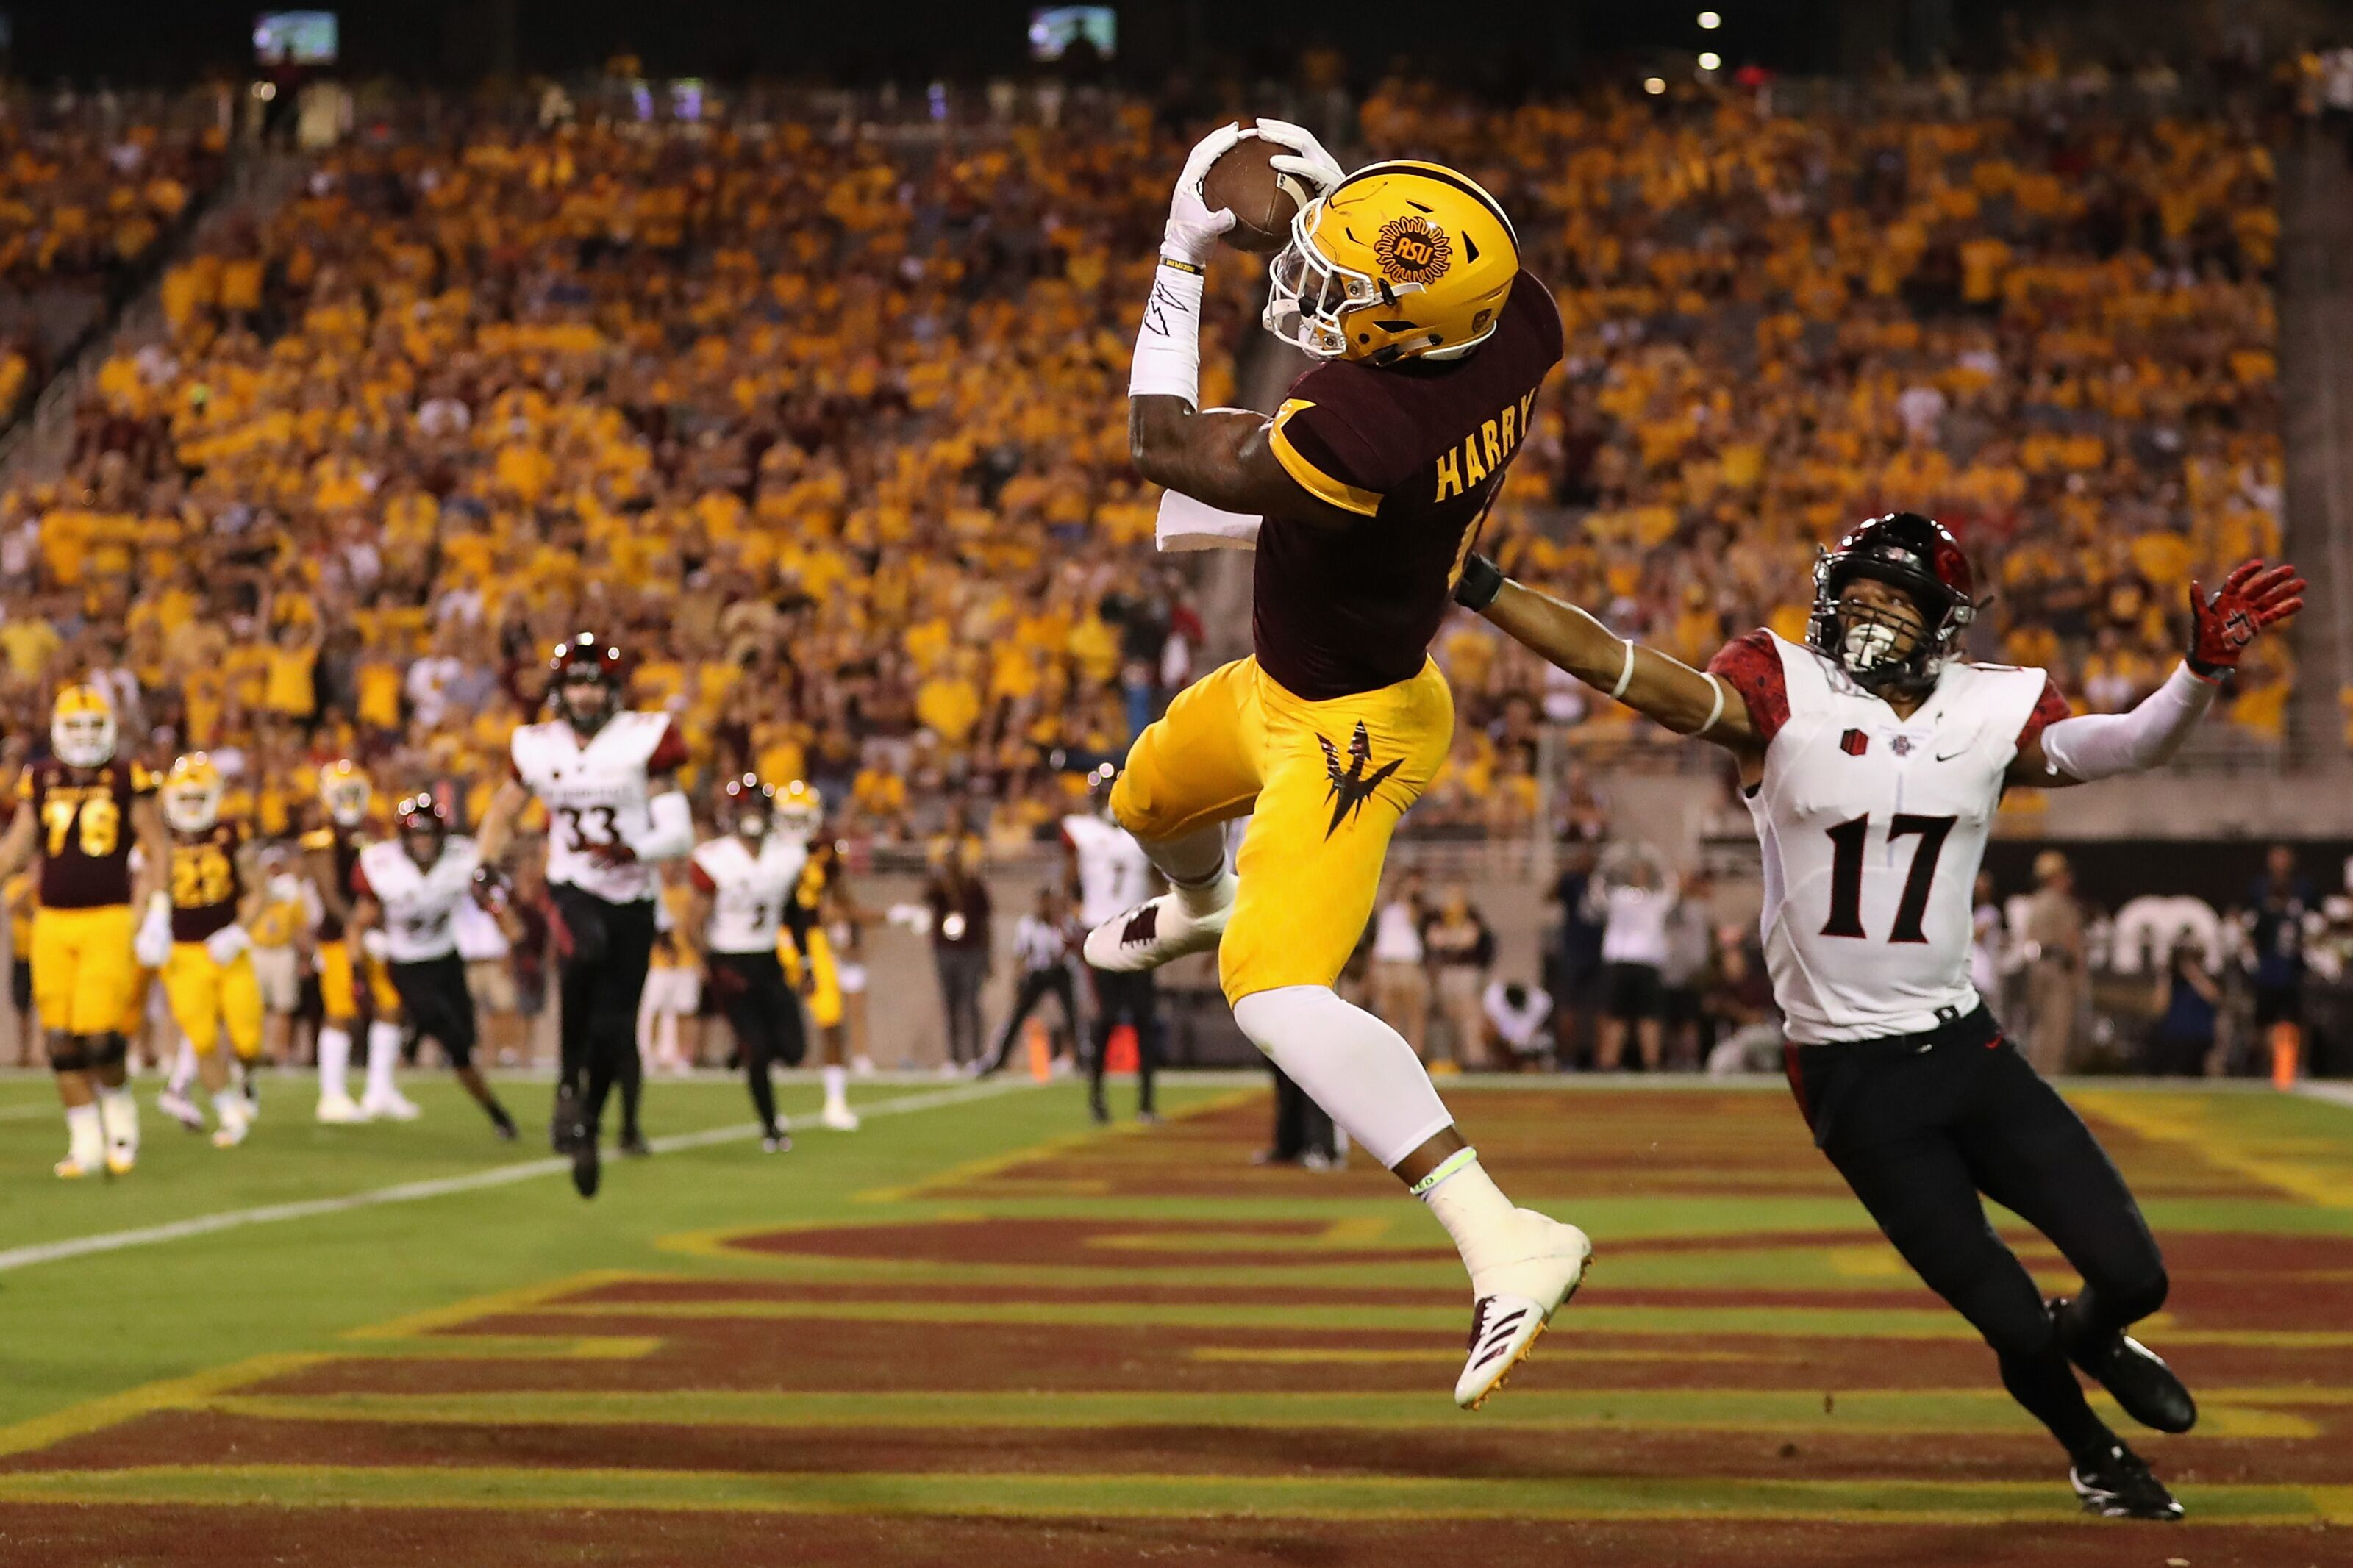 New England Patriots: N'Keal Harry ready to learn 'Patriot Way'